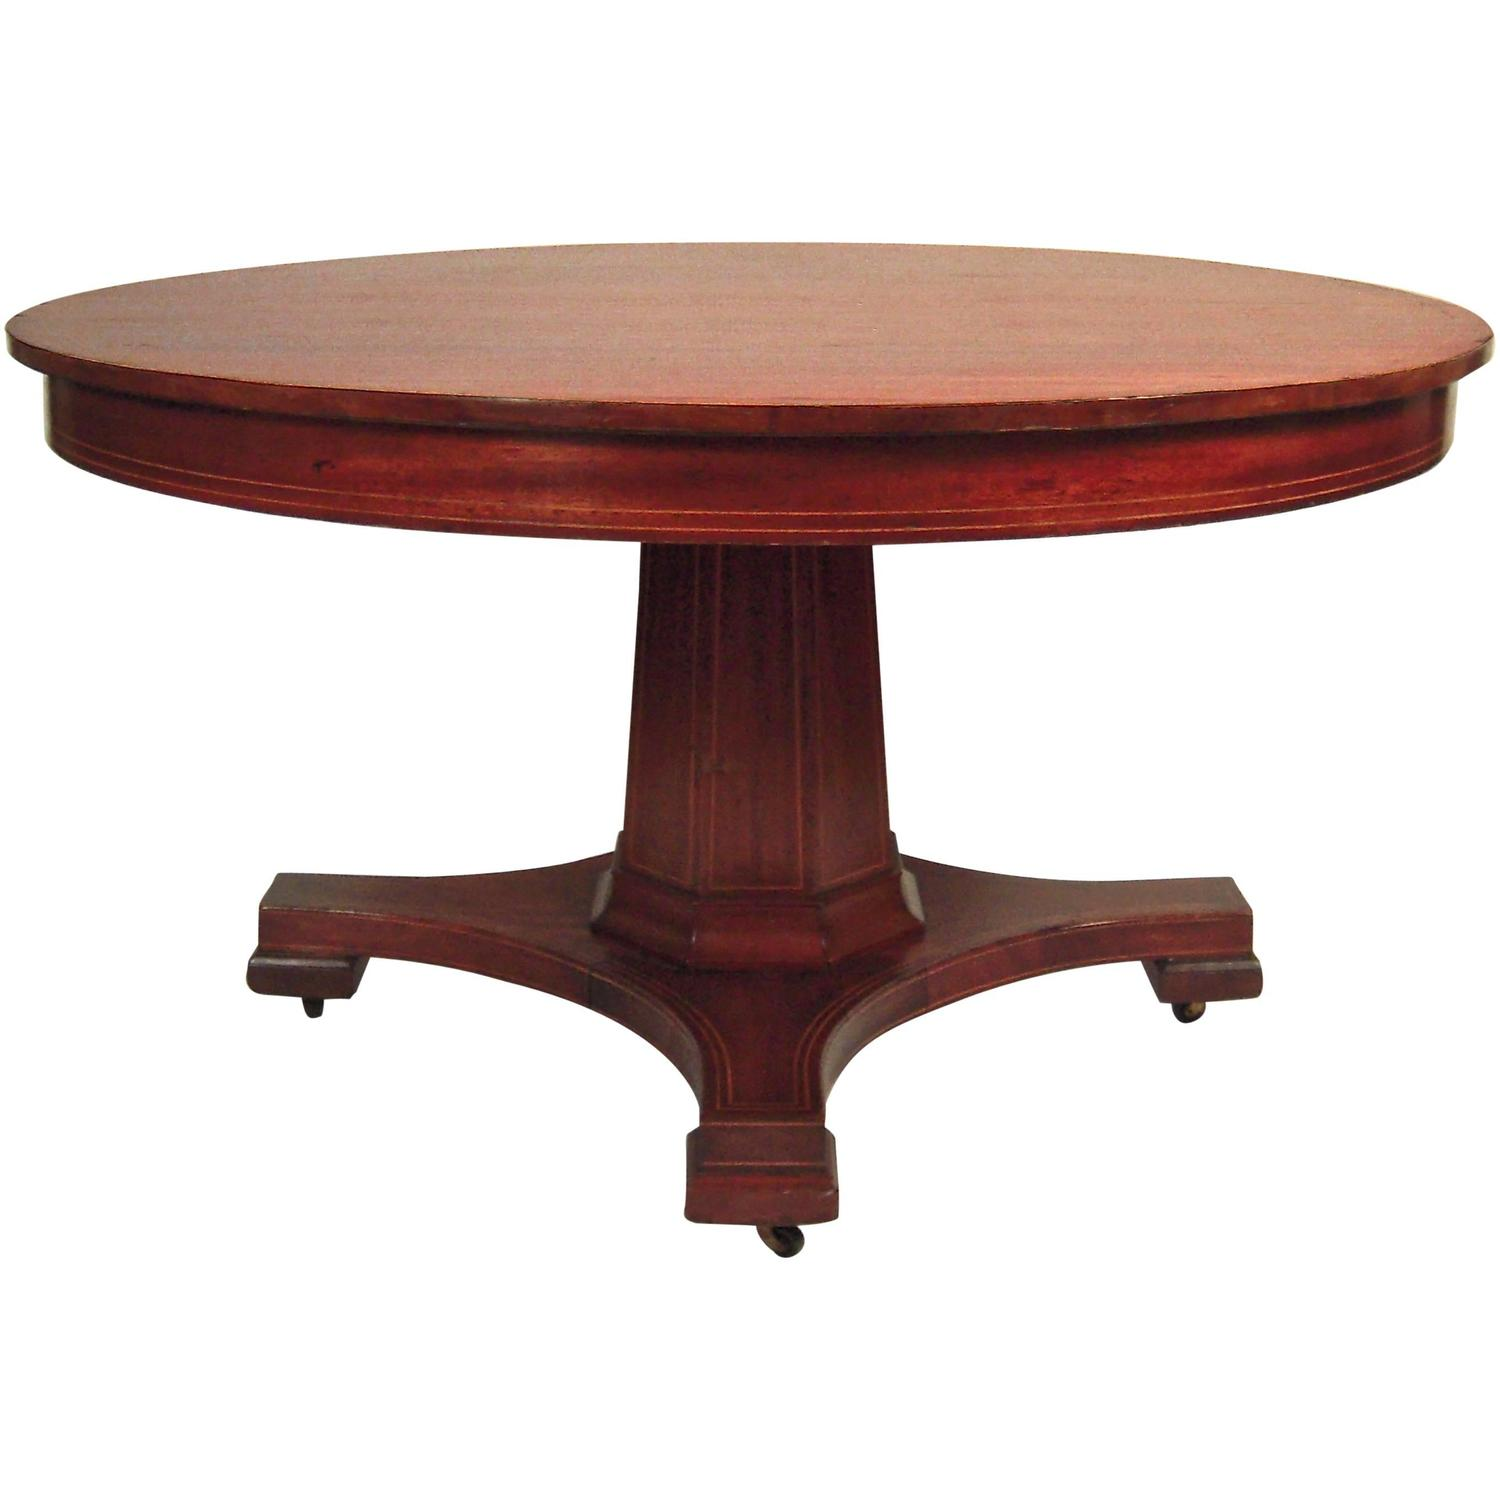 Inlaid Mahogany Round Extension Dining Table 54 Diameter At 1stdibs